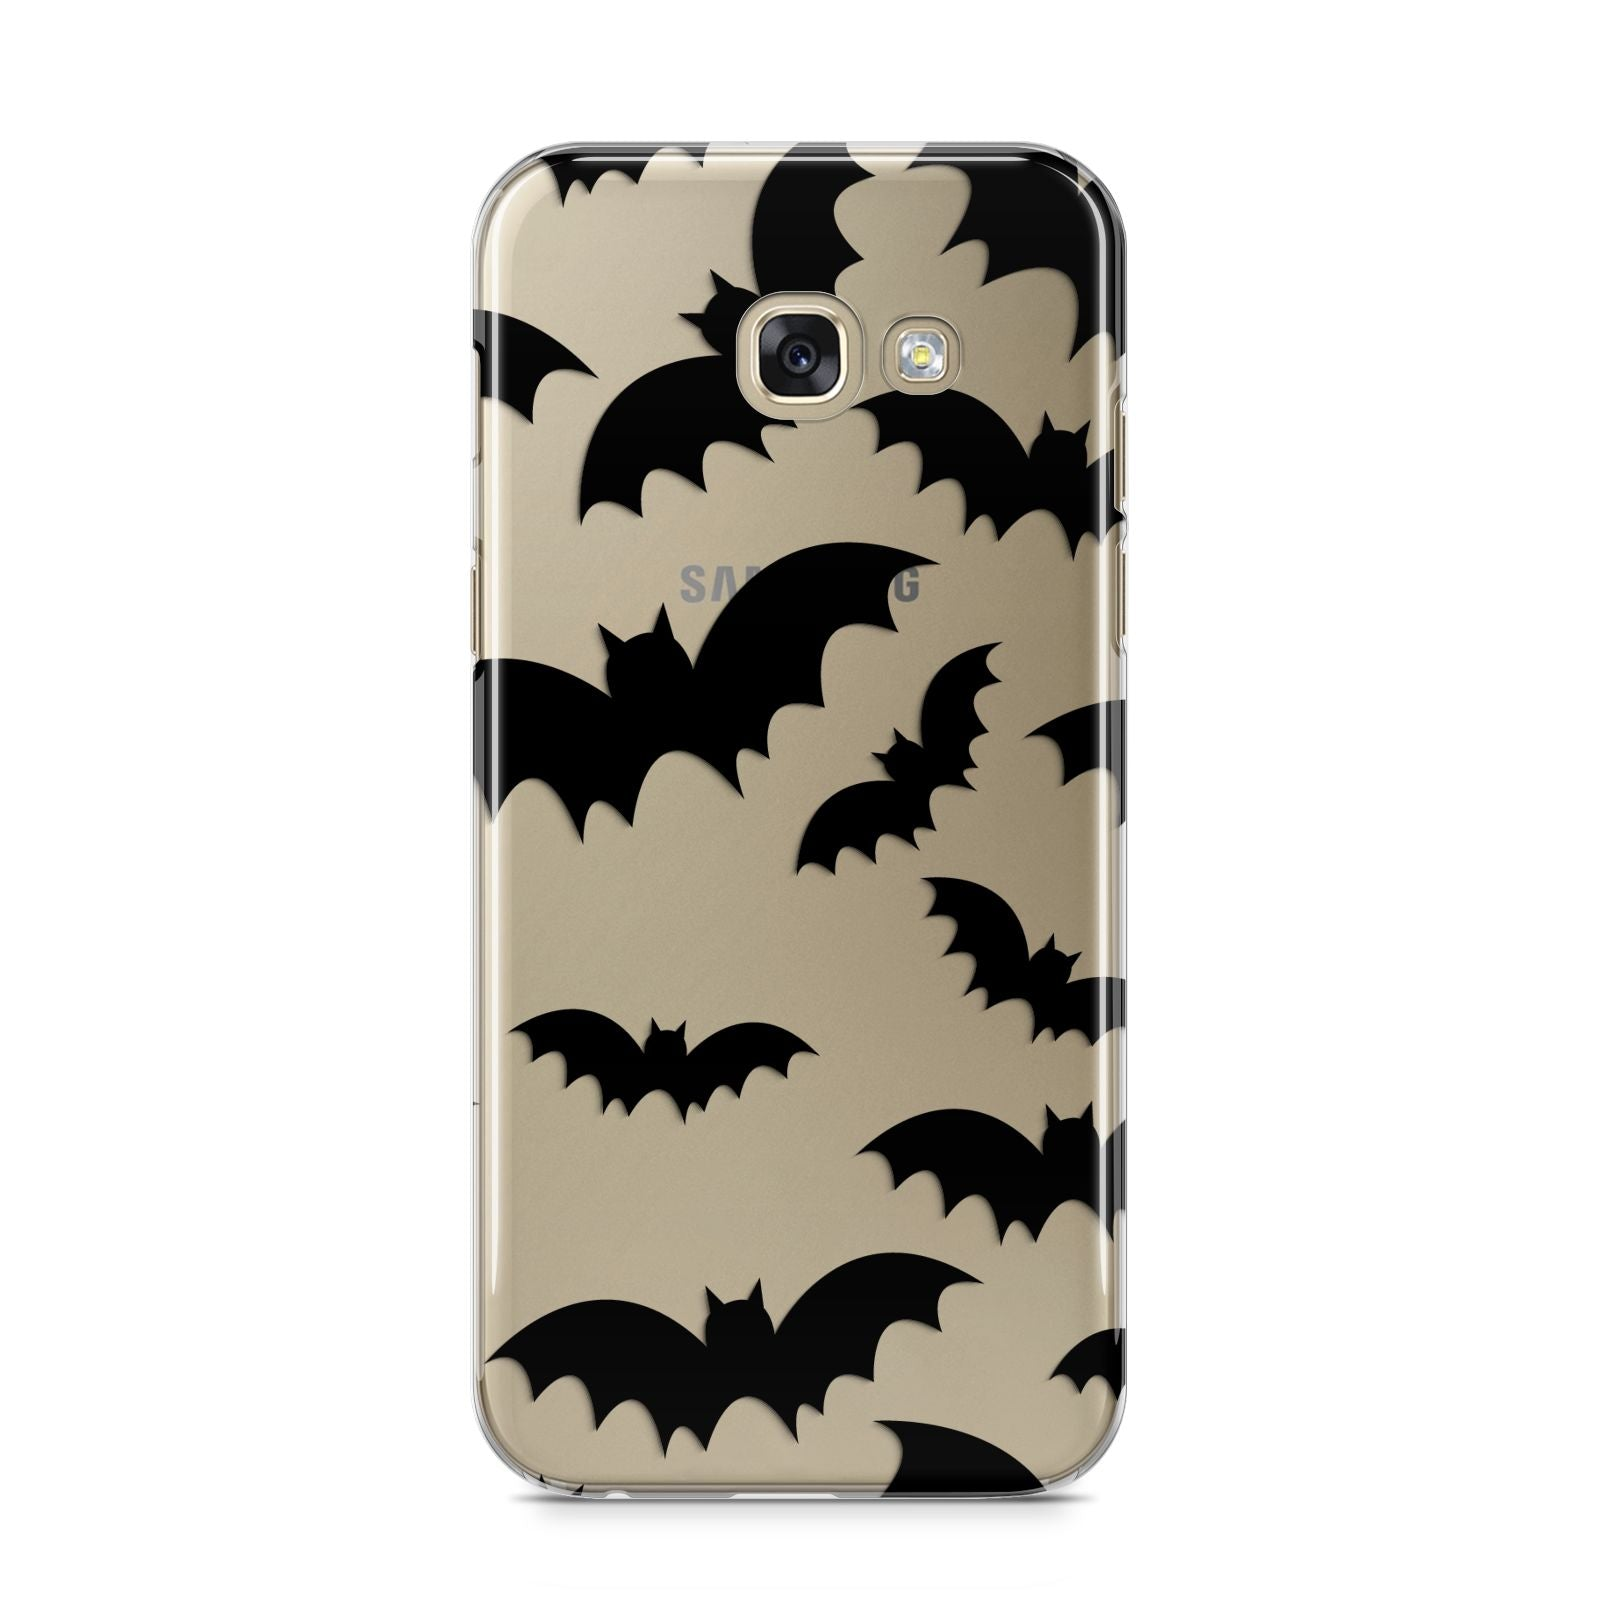 Bat Halloween Print Samsung Galaxy A5 2017 Case on gold phone